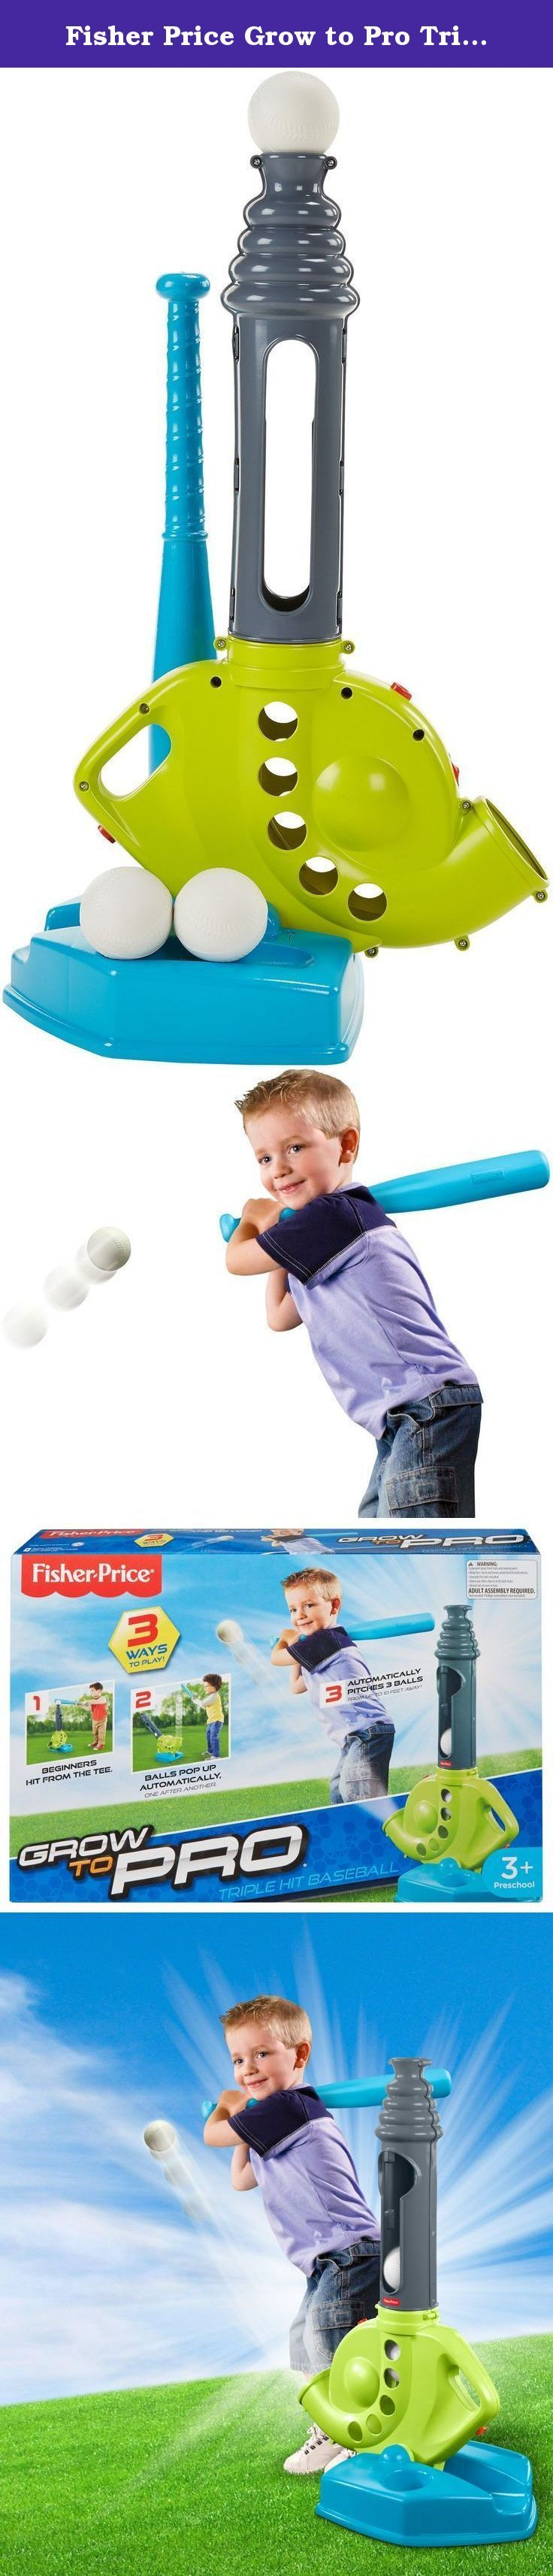 """Fisher Price Grow to Pro Triple Hit Baseball. This baseball set is a triple threat for helping kids learn how to swing like a pro! Beginners hit from the tee. When they're ready for a little more of a challenge, a simple adjustment converts this battery-powered trainer to pop-up pitch. Balls automatically pop-up from the base, one after another, which is perfect for rookies! For """"pros,"""" the trainer automatically pitches three balls from up to 10 feet away! Learning to swing with Grow to…"""